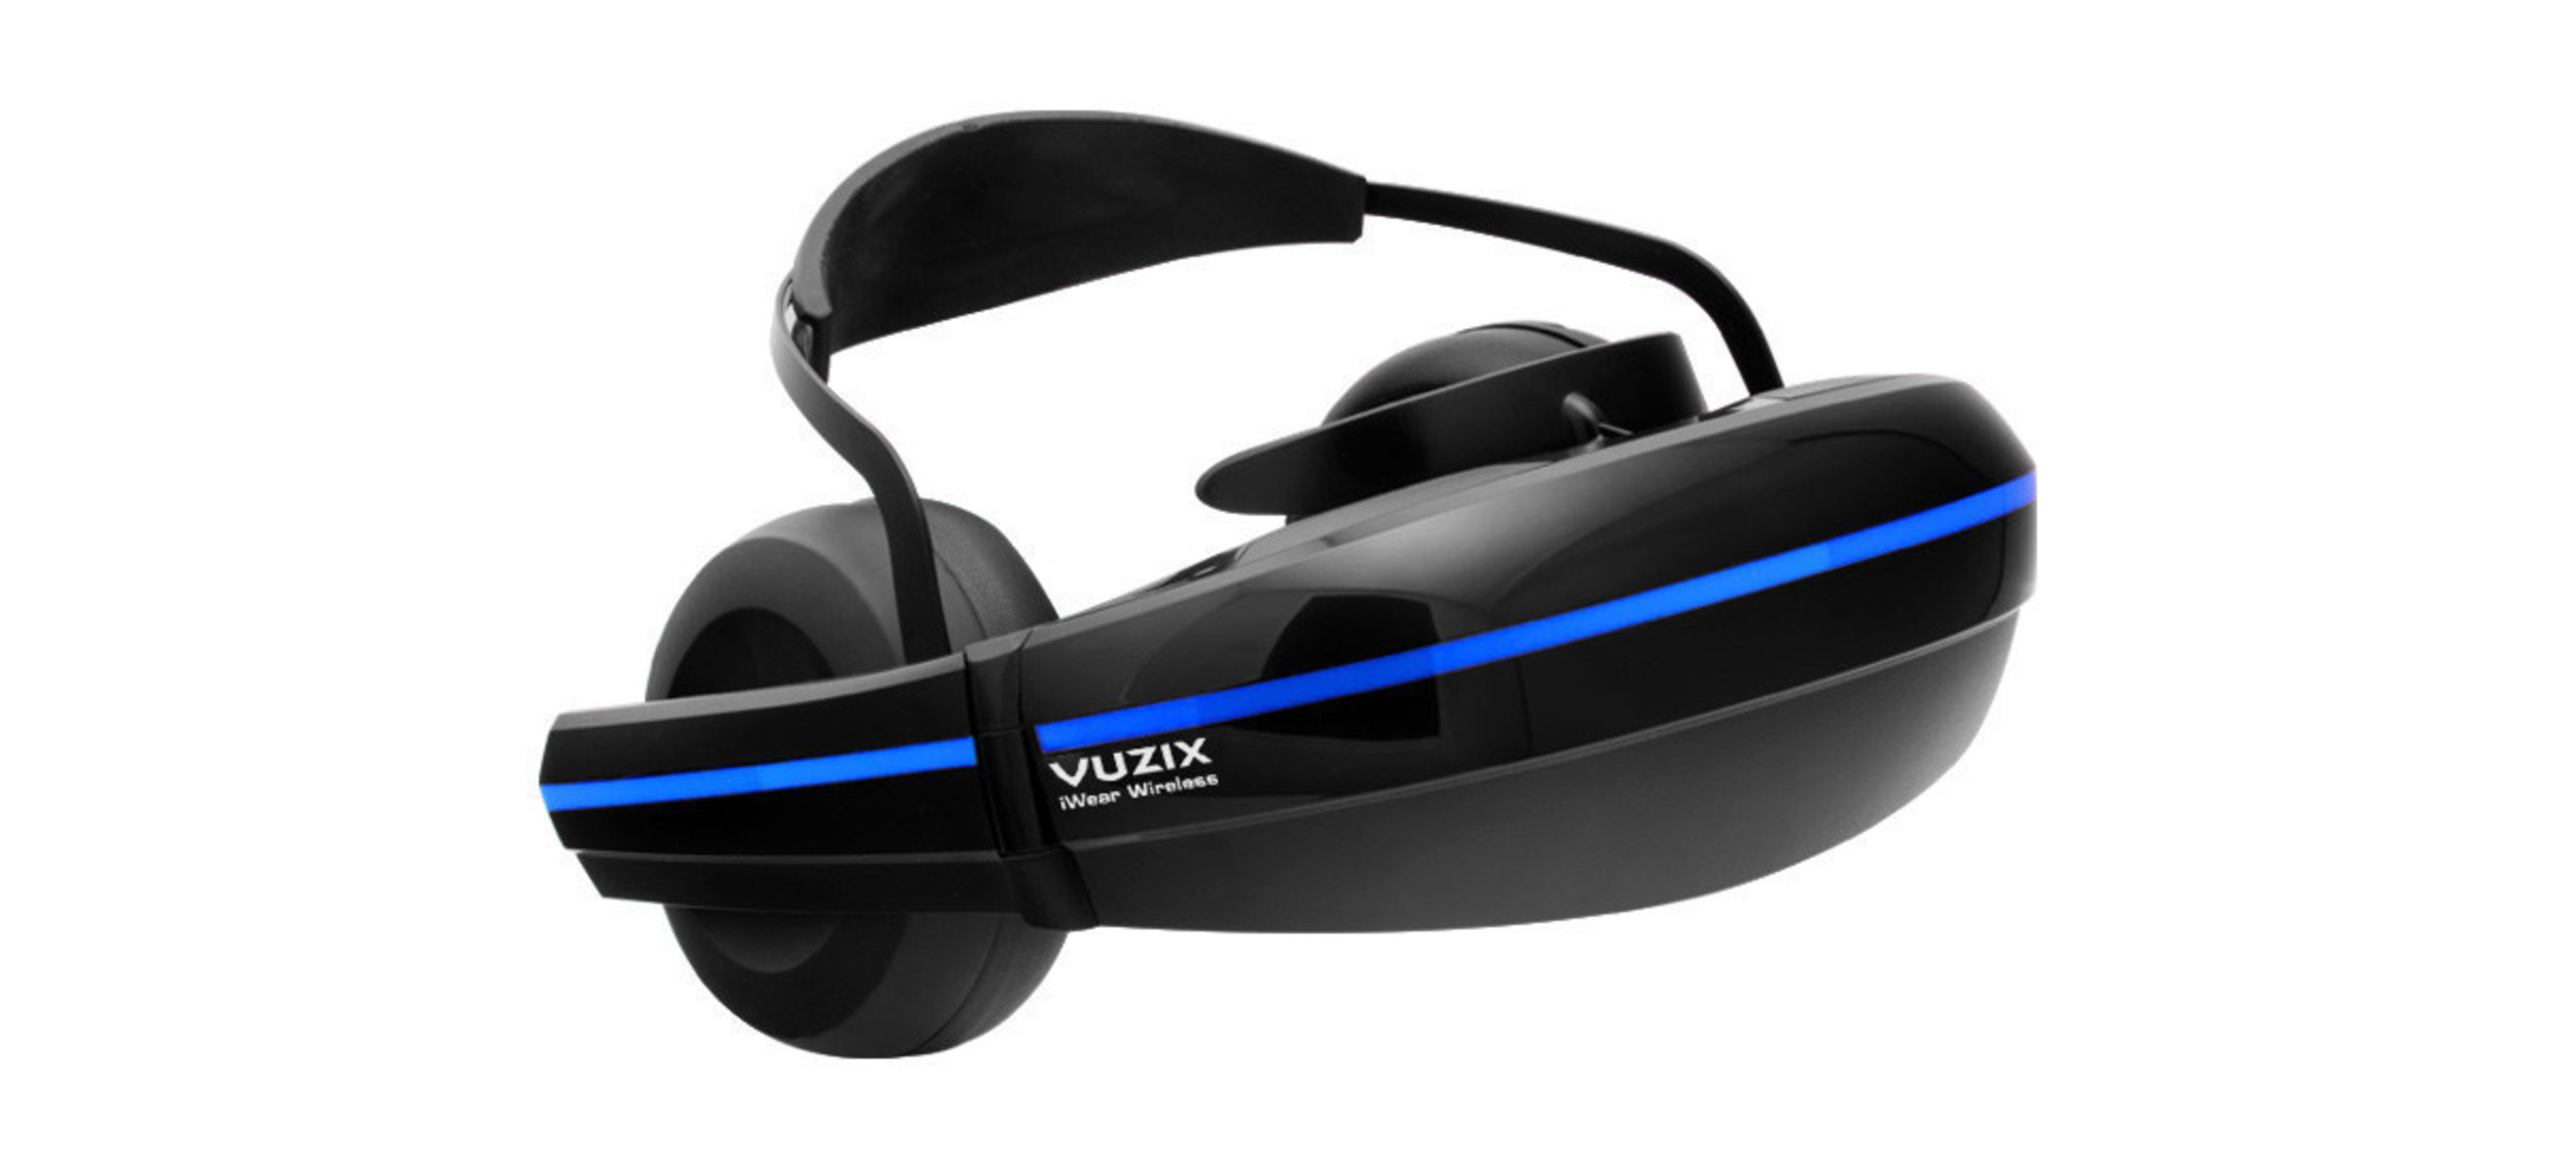 Vuzix Awarded Eight CES 2016 Innovation Awards, Including 'Best of' in Gaming and Virtual Reality for iWear' Wireless Video Headphones